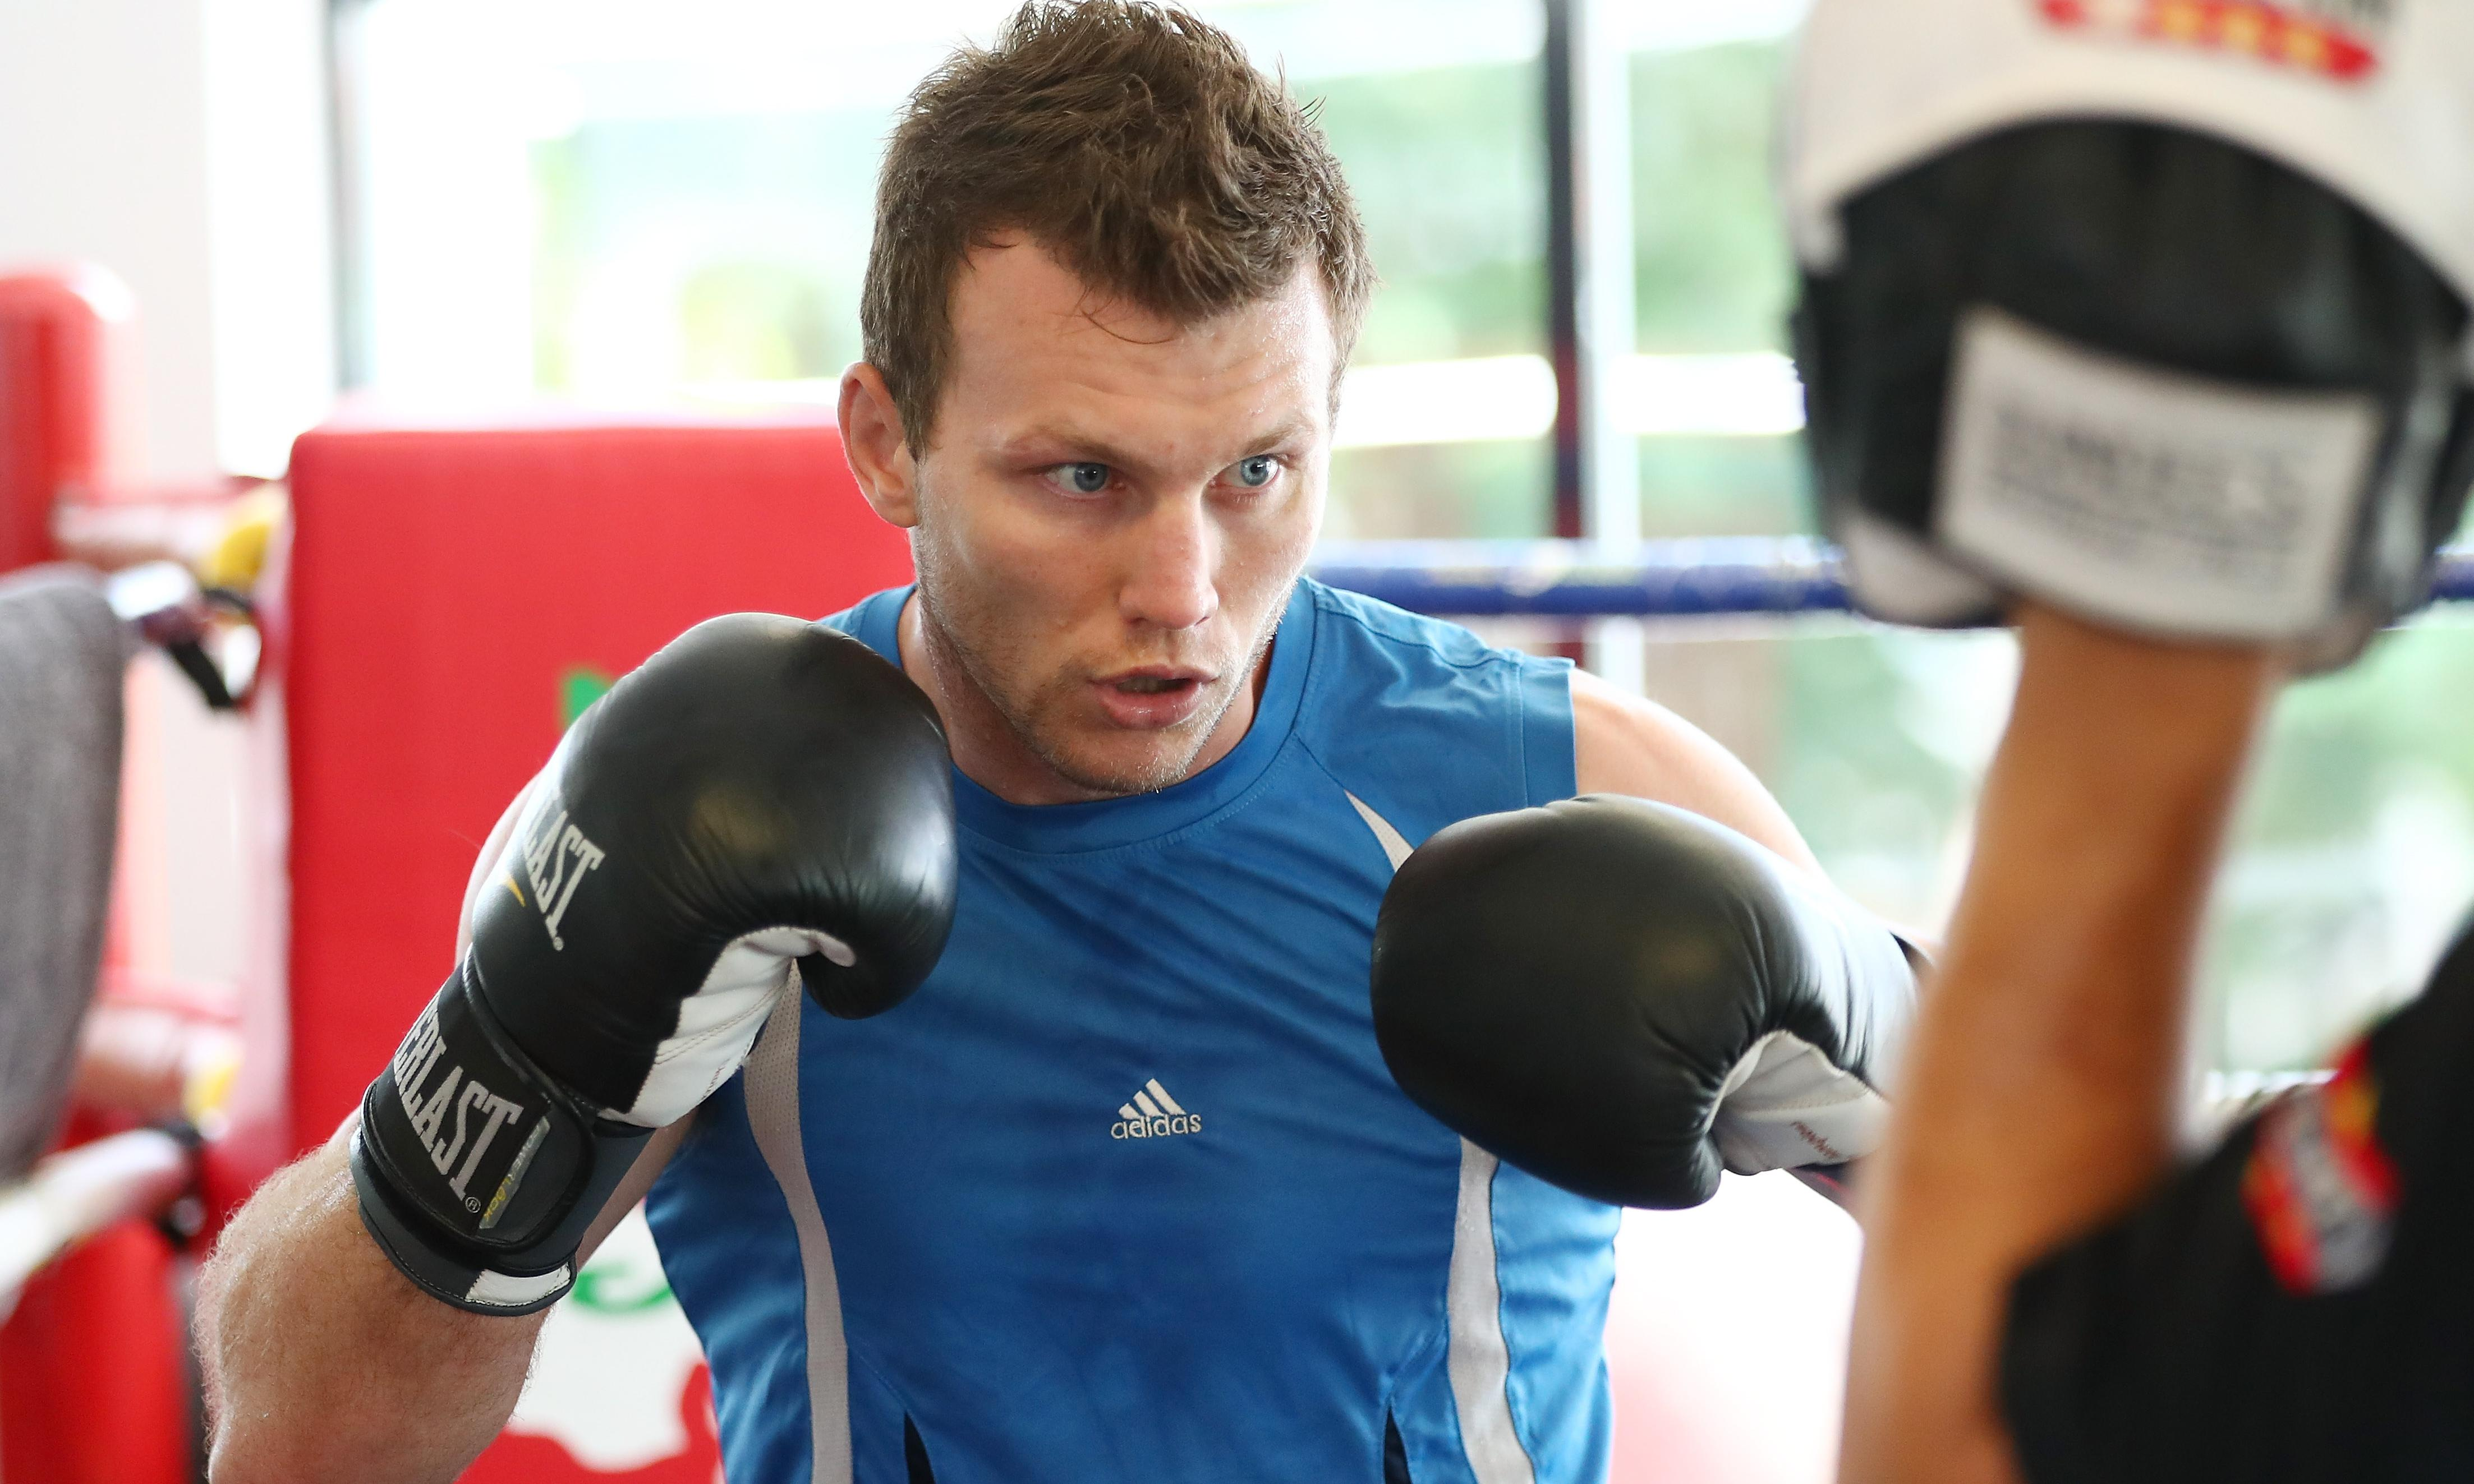 Gloves with no foam padding to be used in Jeff Horn's fight with Terence Crawford